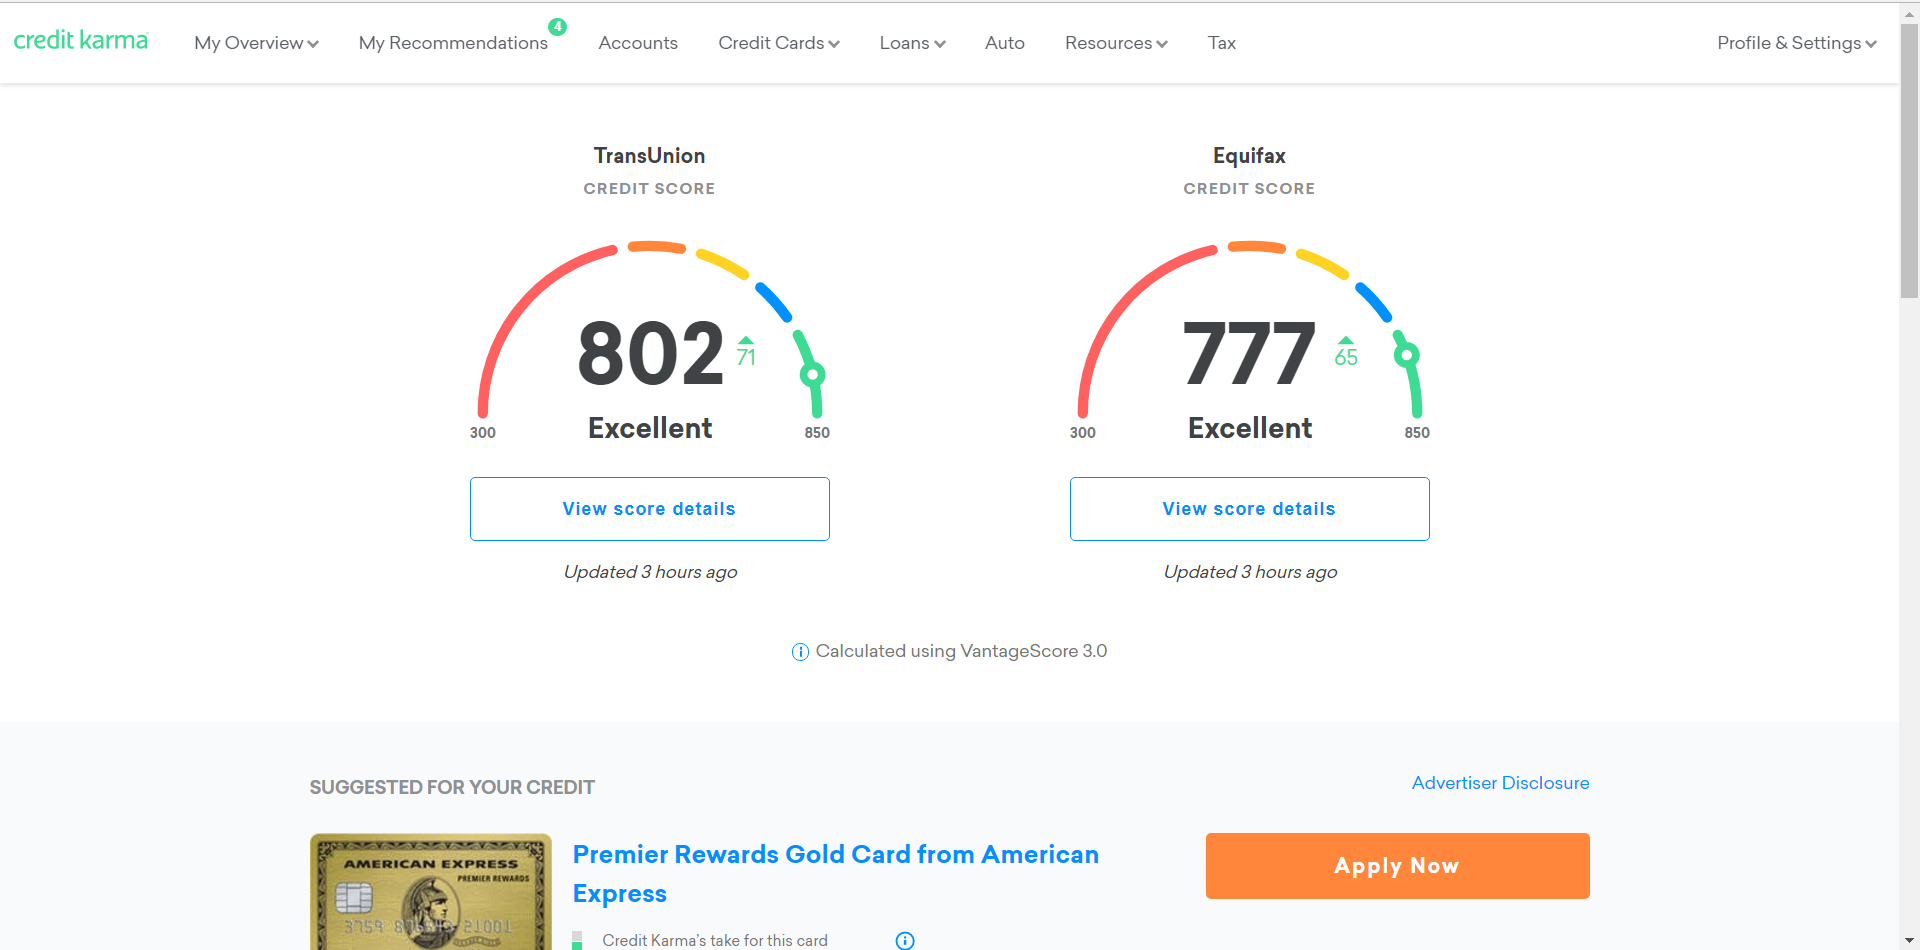 Credit Karma dashboard